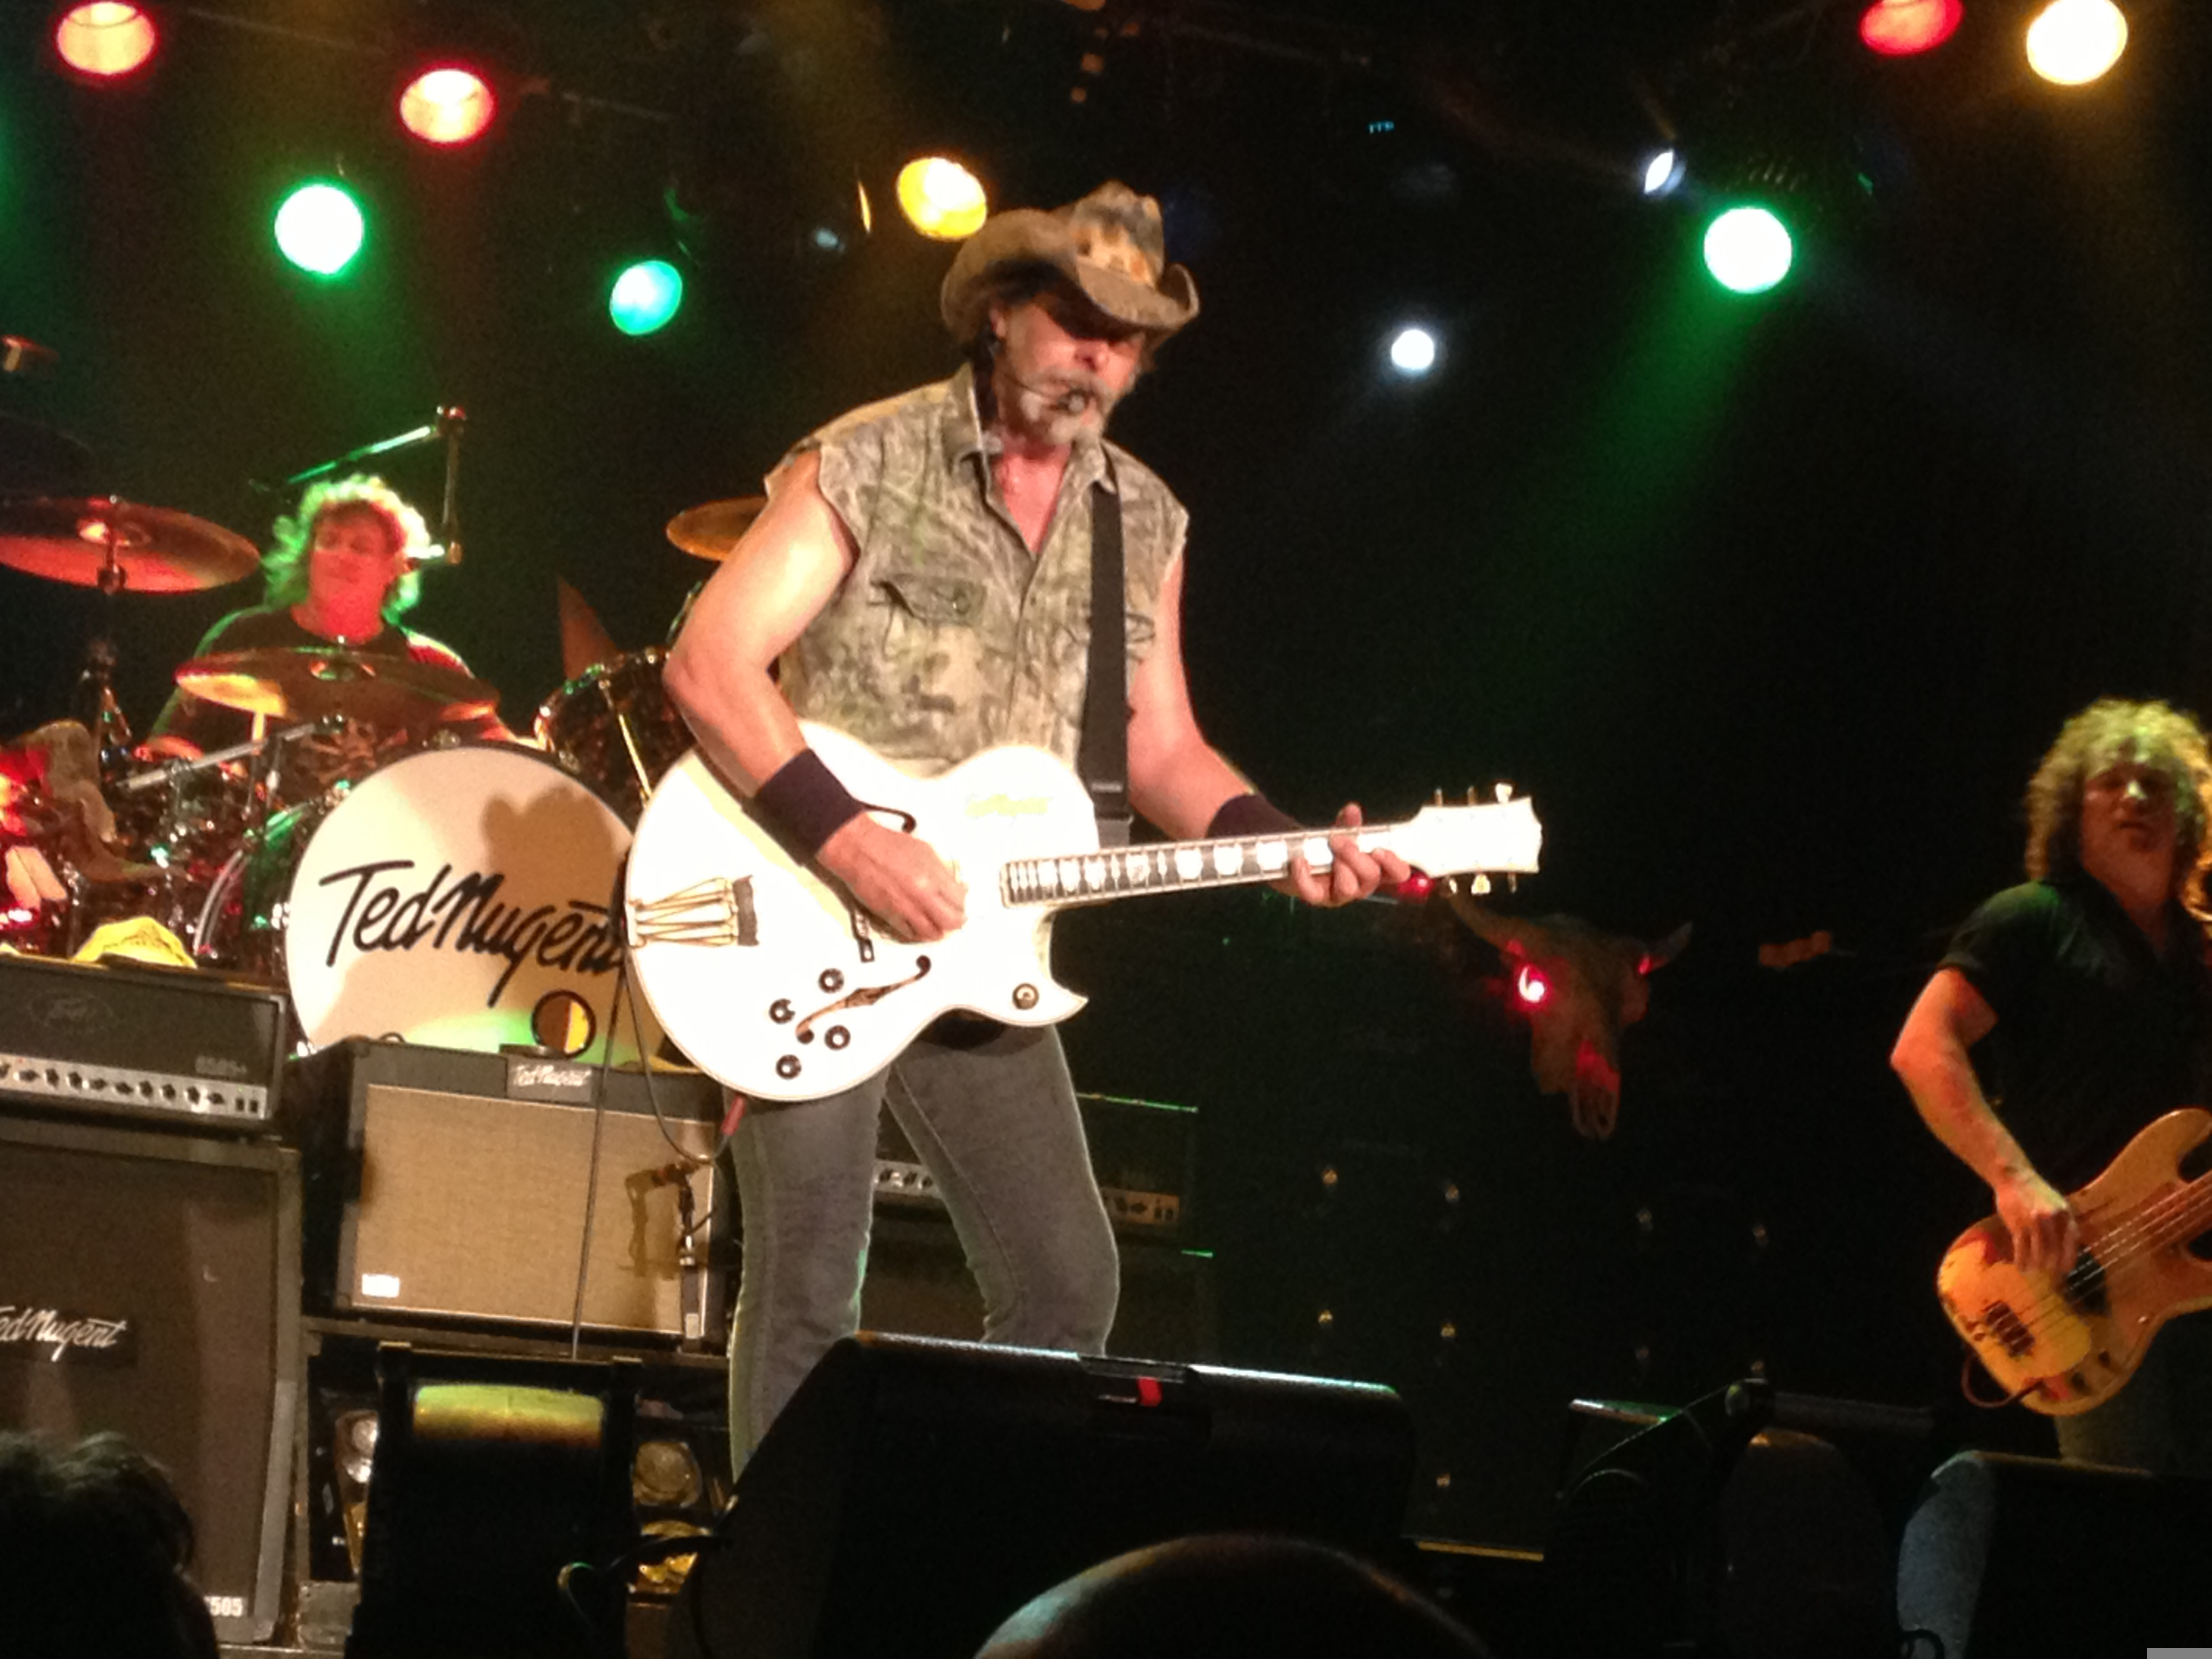 Ted nugent and fred bear images thecelebritypix